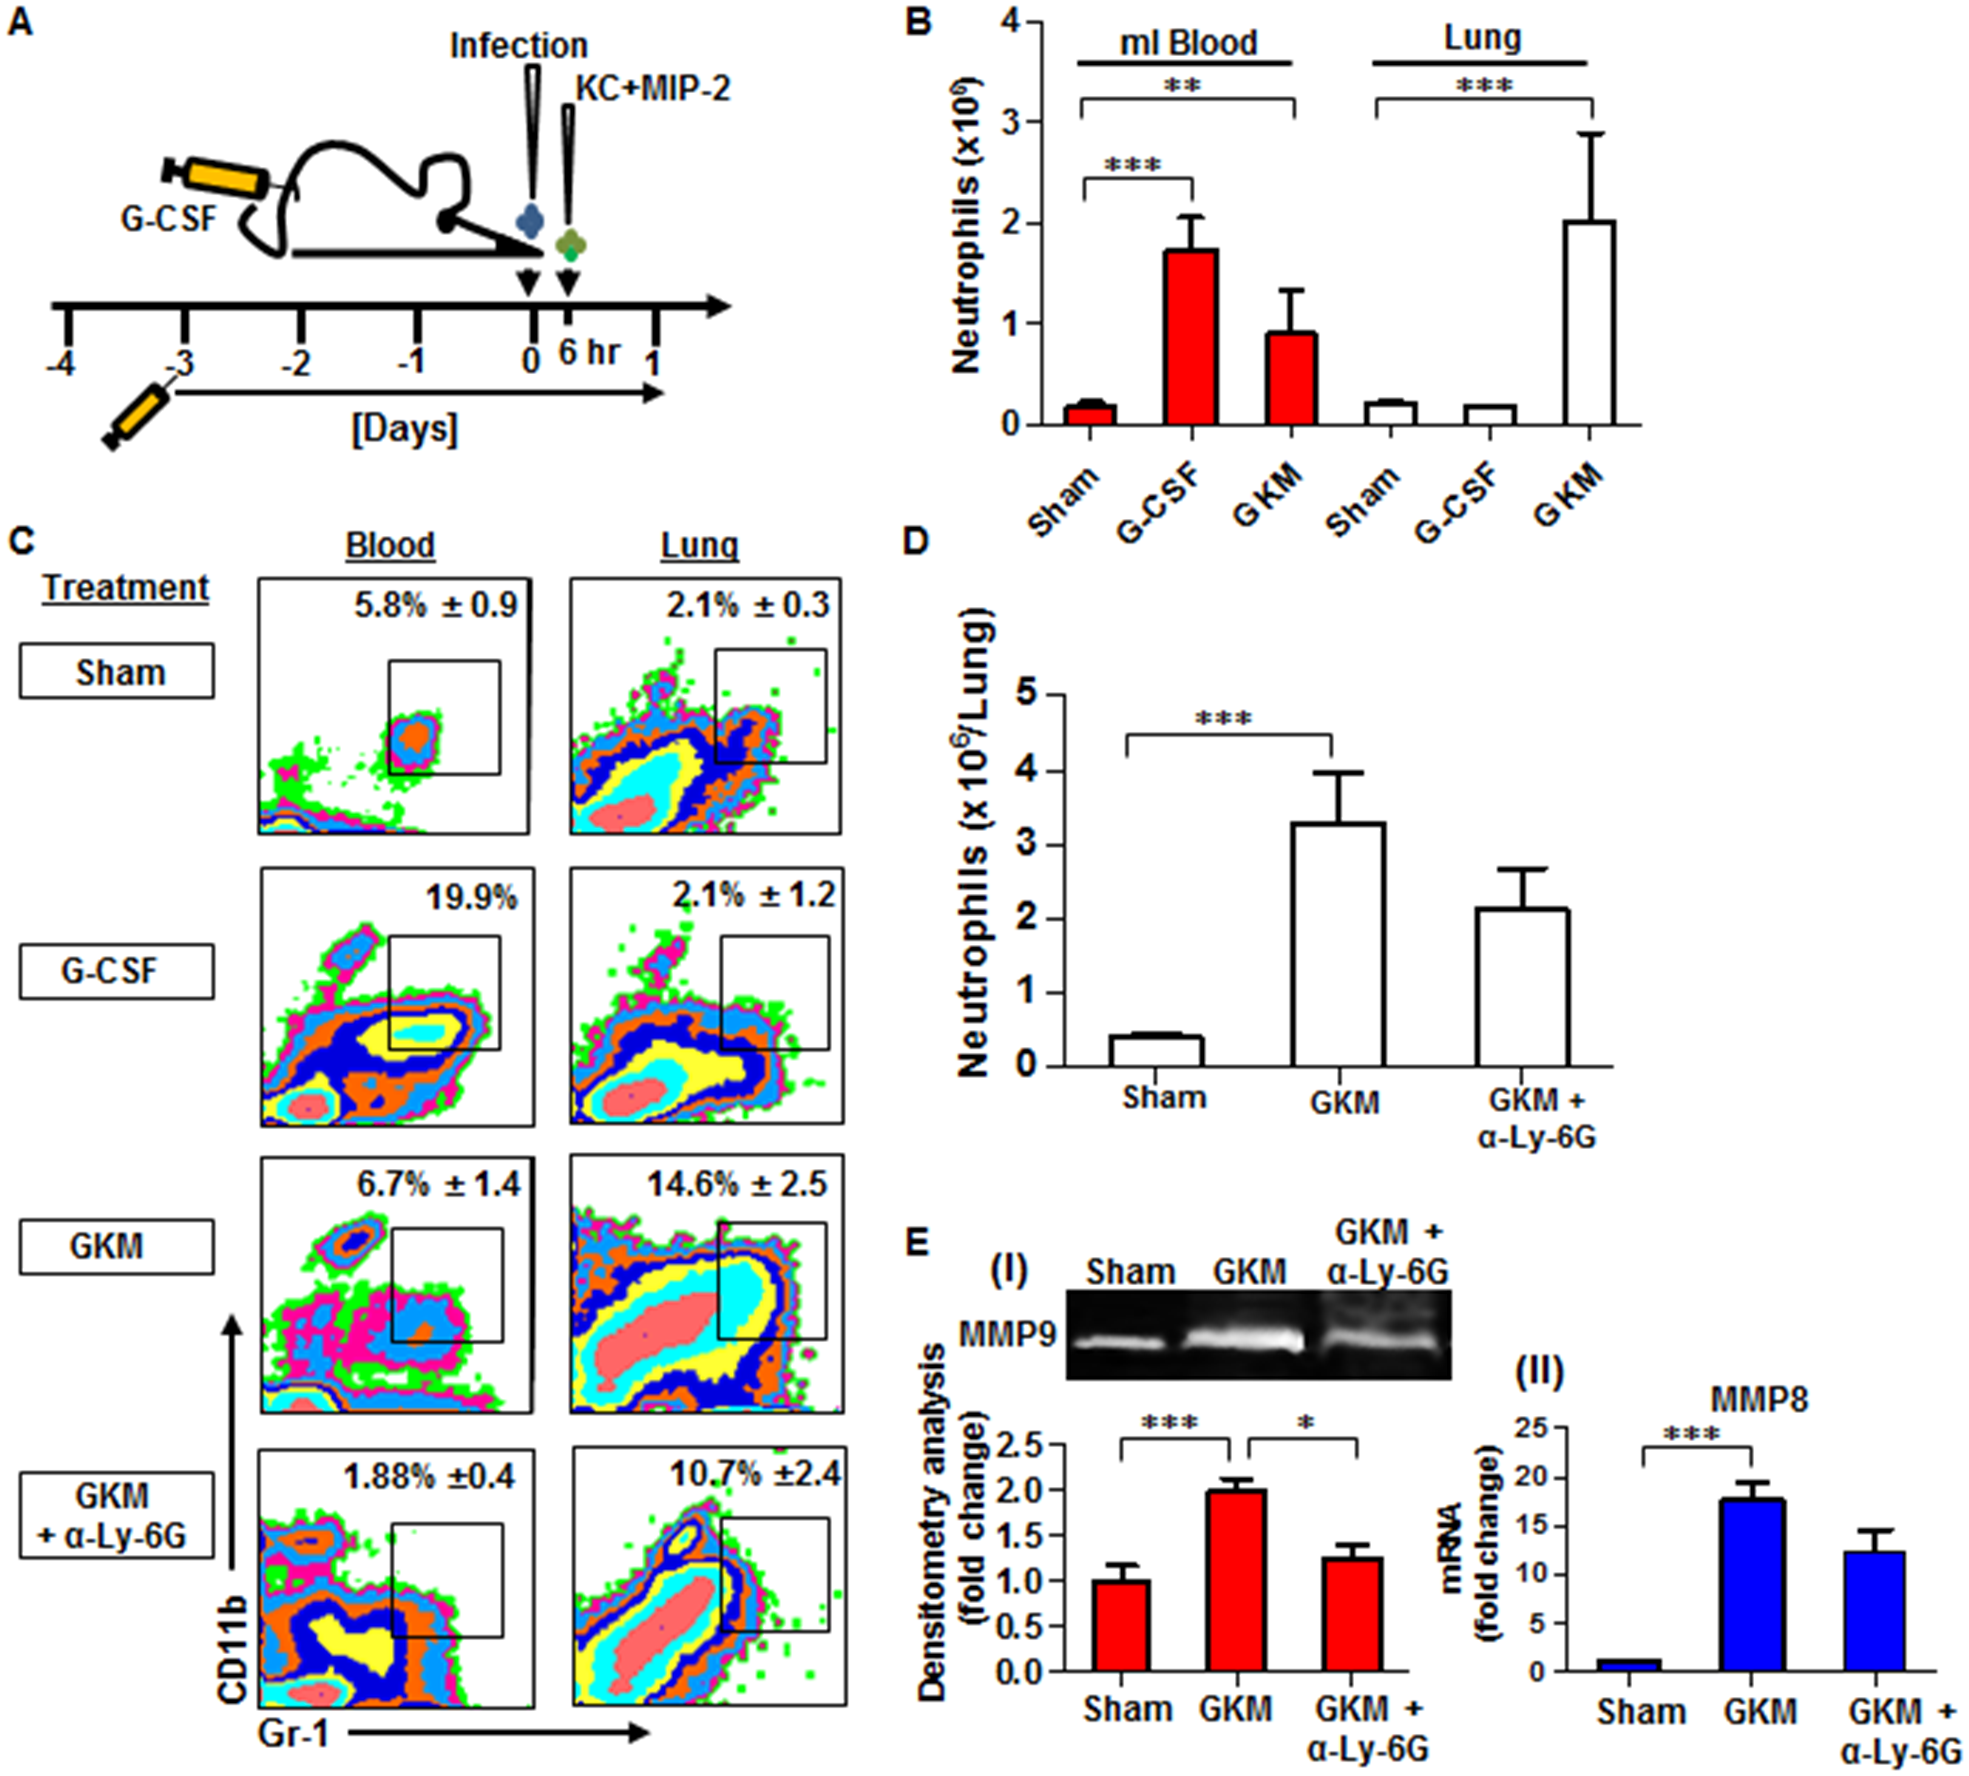 Combined treatment with G-CSF, KC and MIP-2 (GKM) facilitates the early recruitment of neutrophils to the lungs during pneumonic plague.